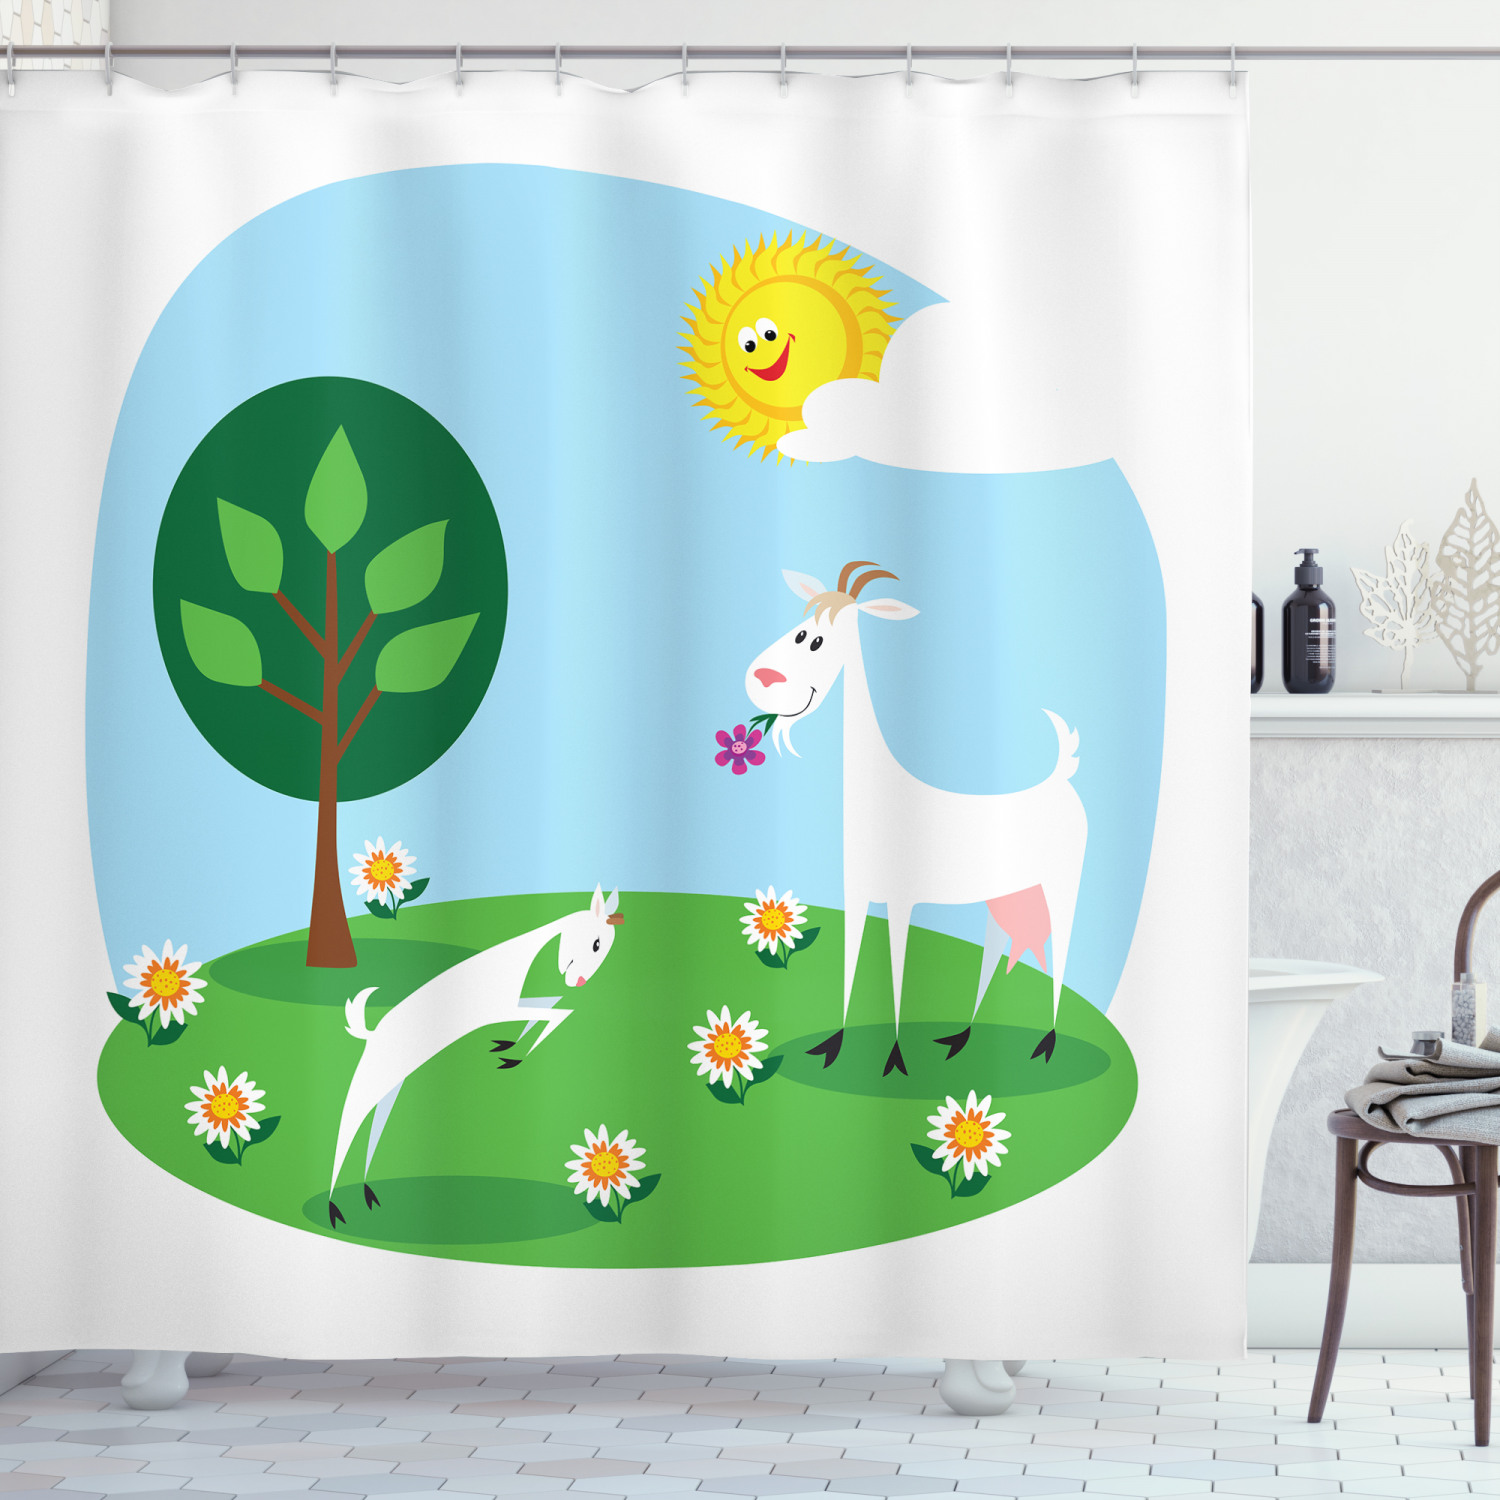 goat shower curtain cartoon goat and his baby playing in the meadow eating daisy plants on a sunny day fabric bathroom set with hooks 69w x 75l